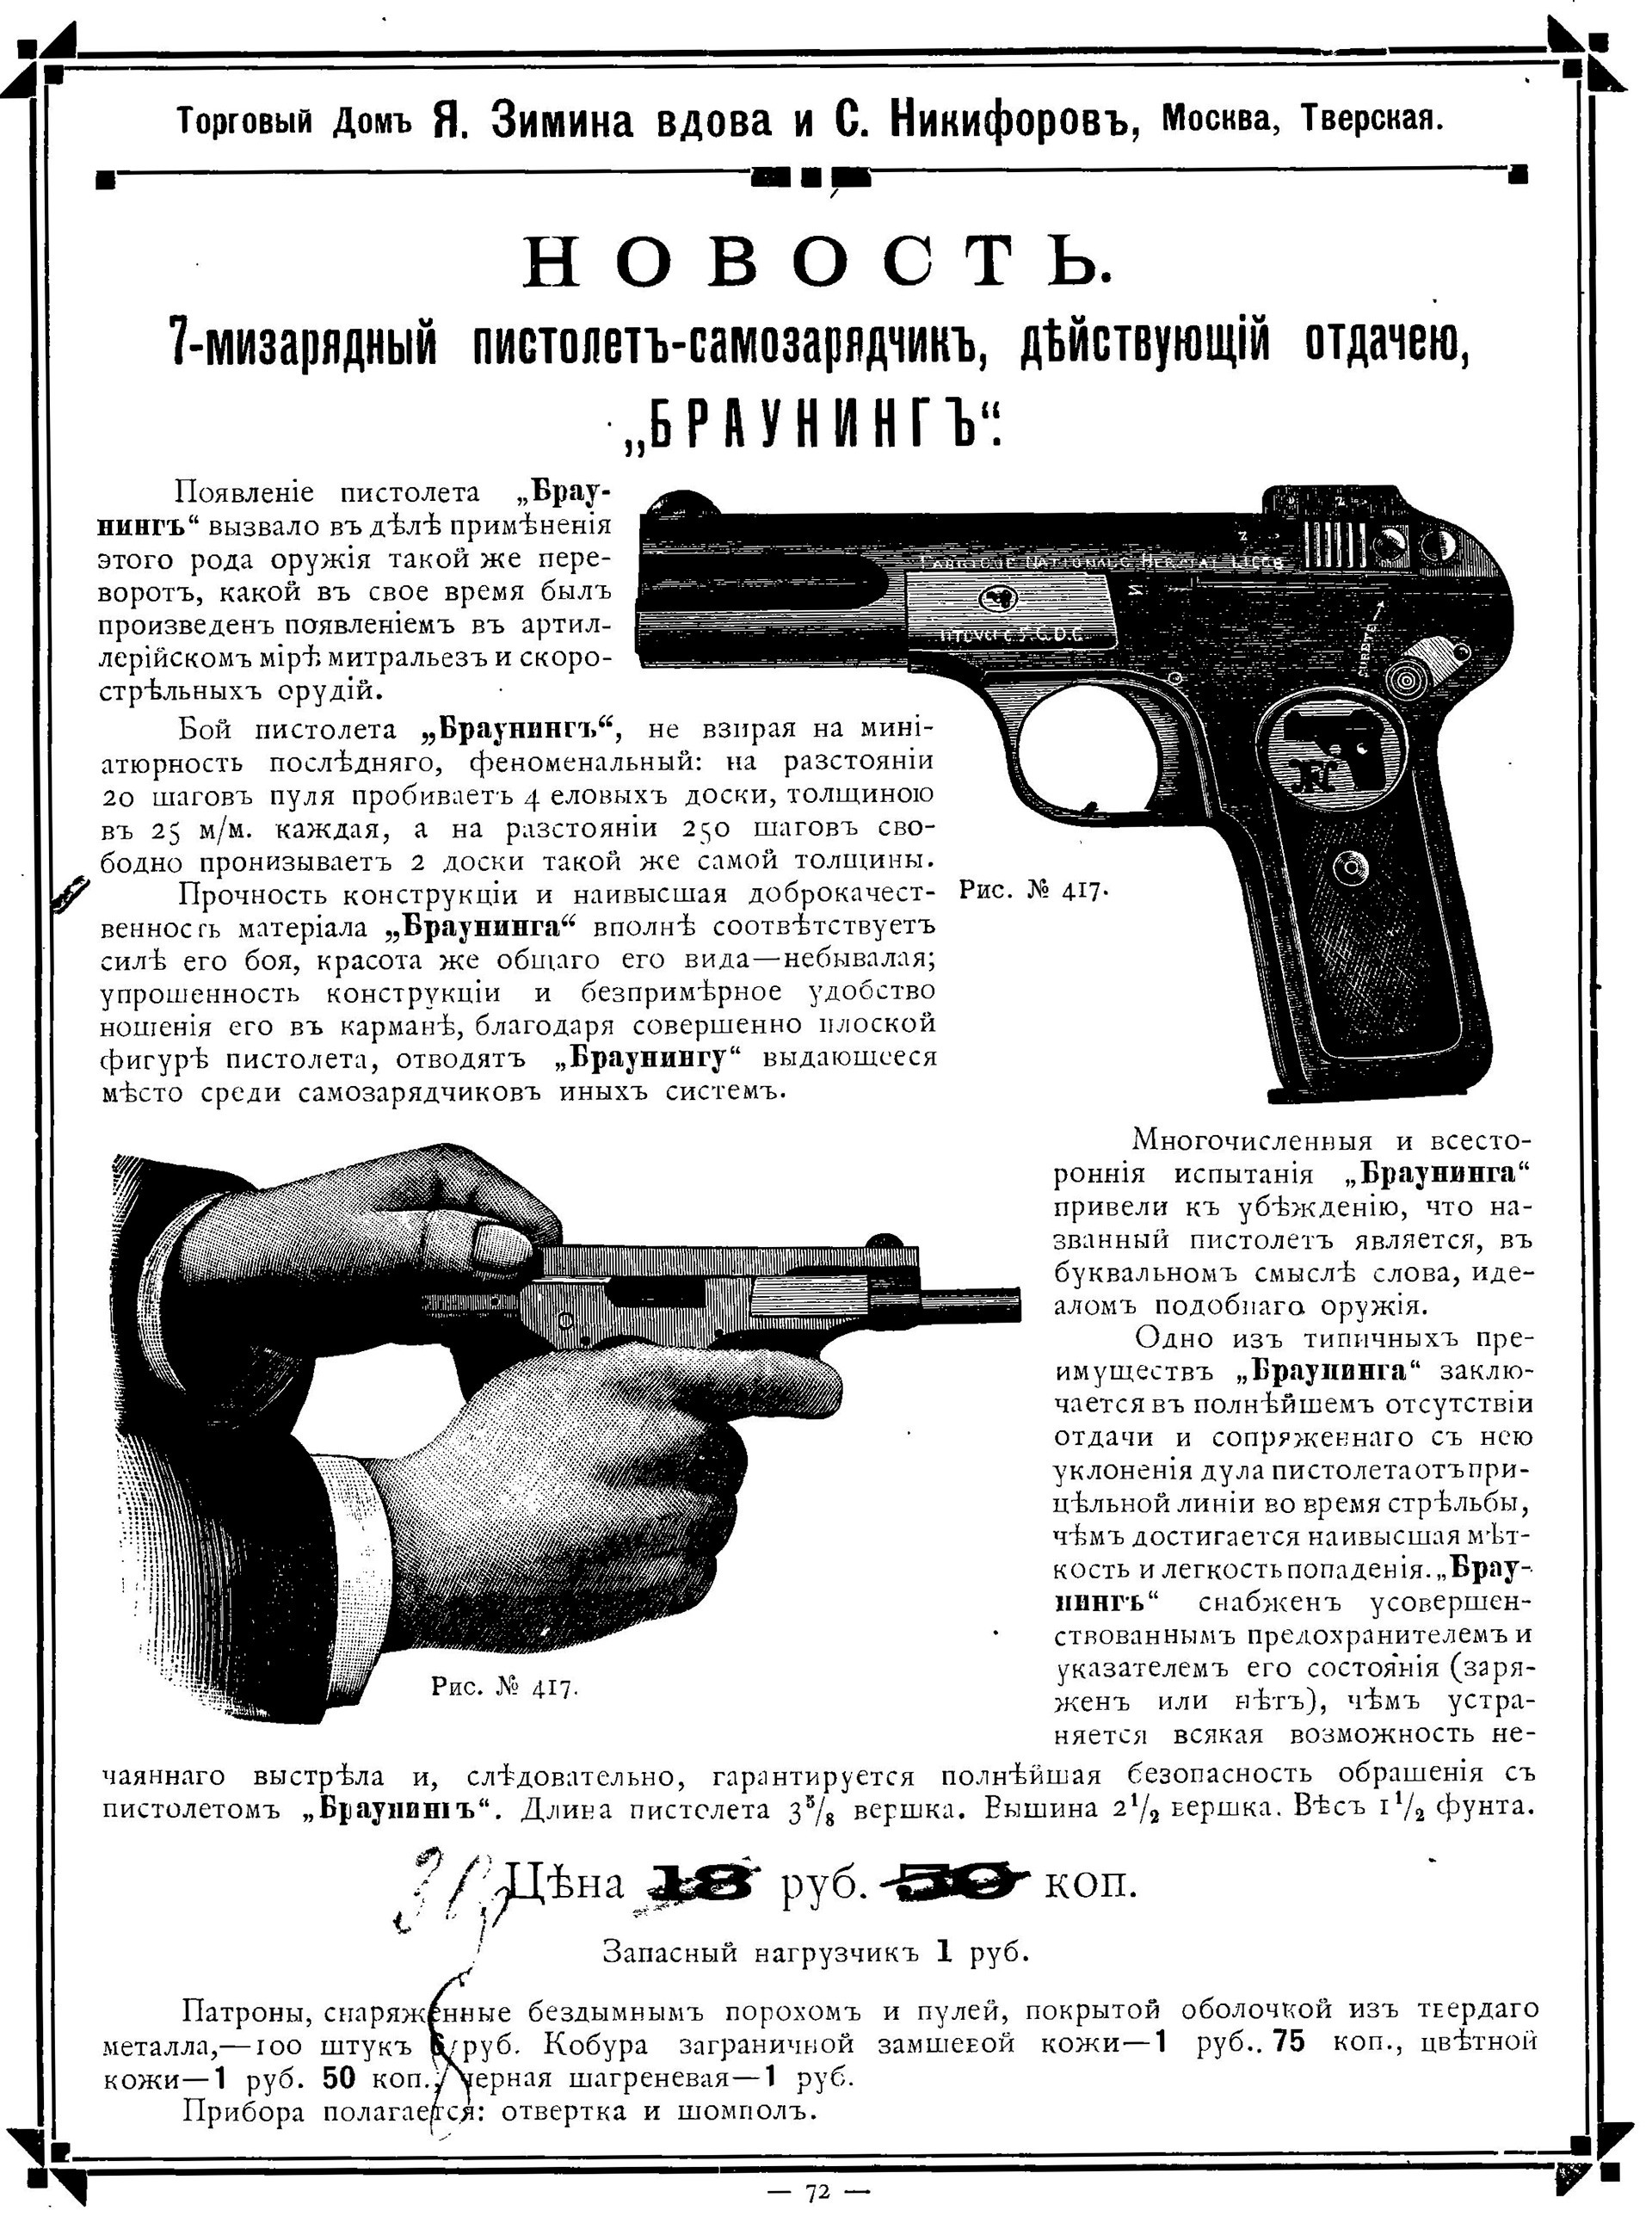 Newspapers advertised Brownings, Nagants, Mausers, and other models of handgun which were as popular as they were affordable.